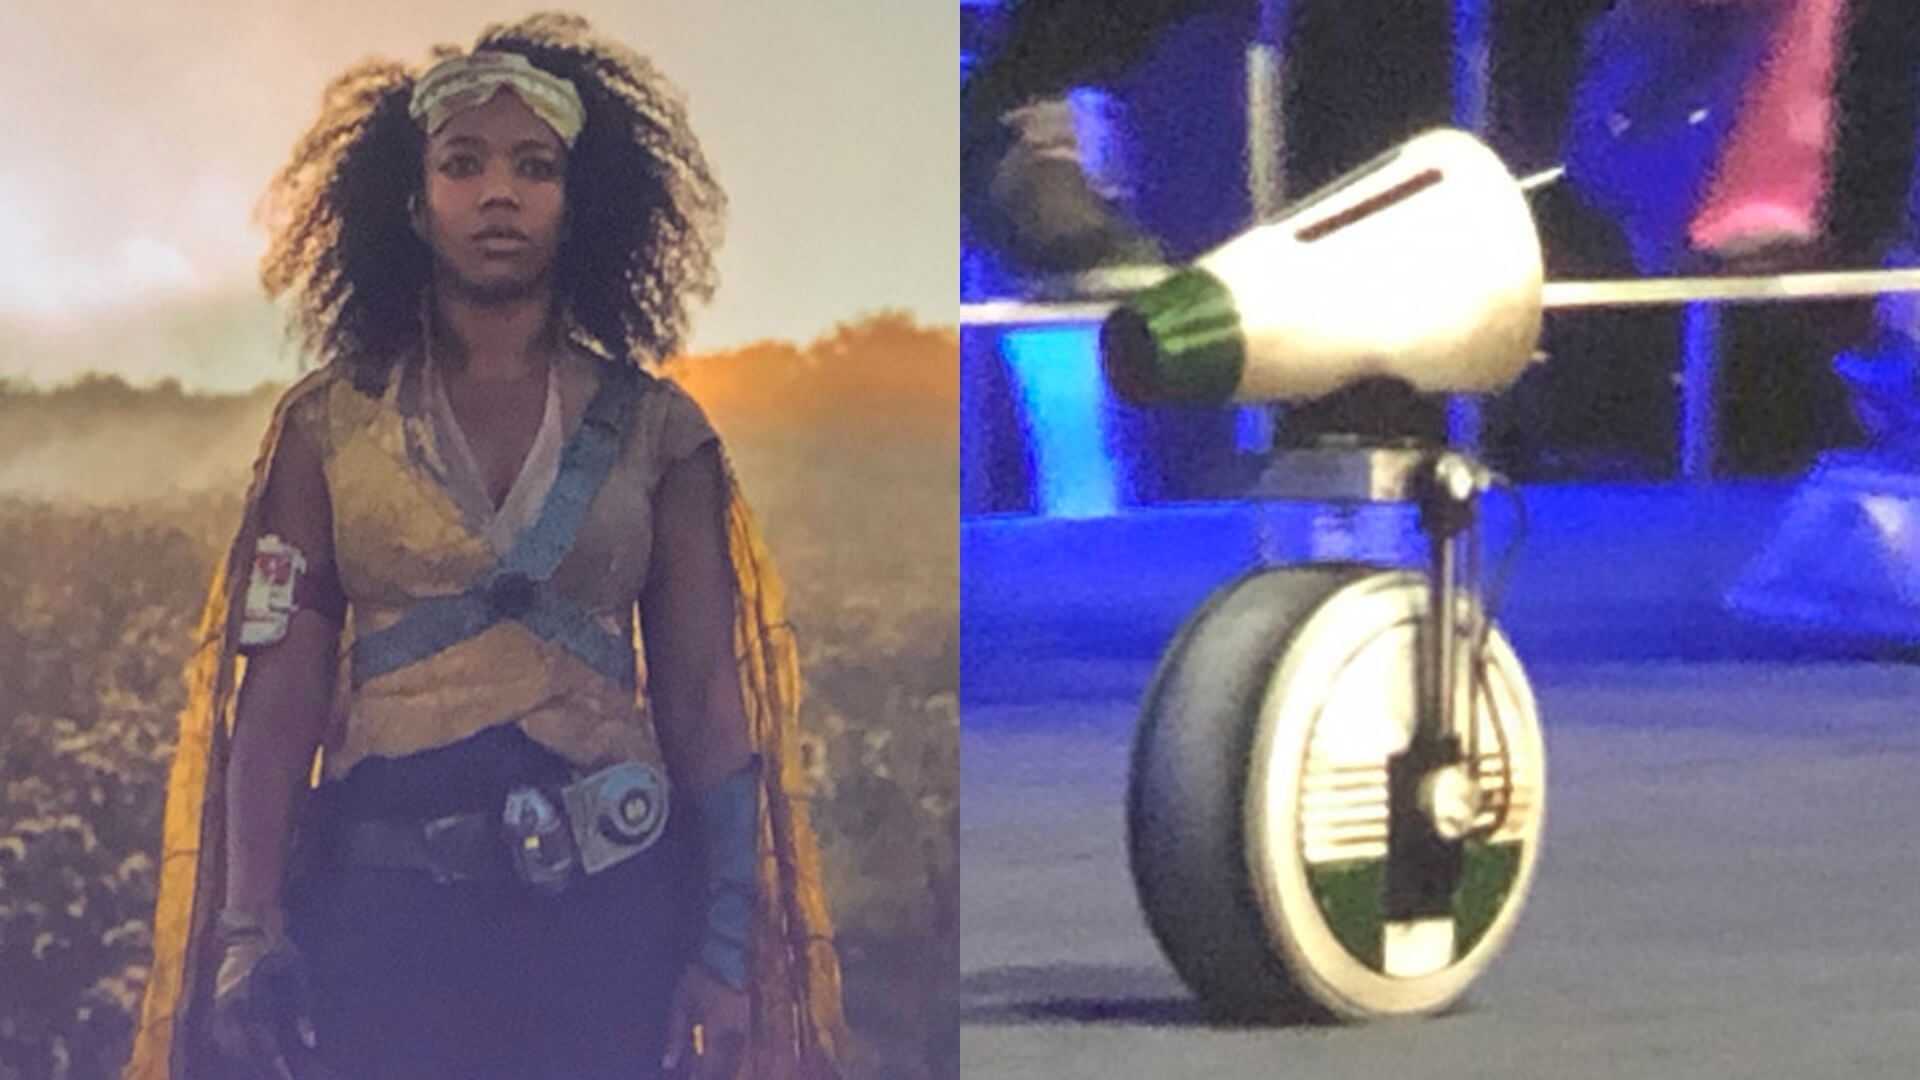 Star Wars The Rise Of Skywalker To Receive New Character Jannah Droid D 0 Star Wars Trilogy Star Wars Merchandise Star Wars